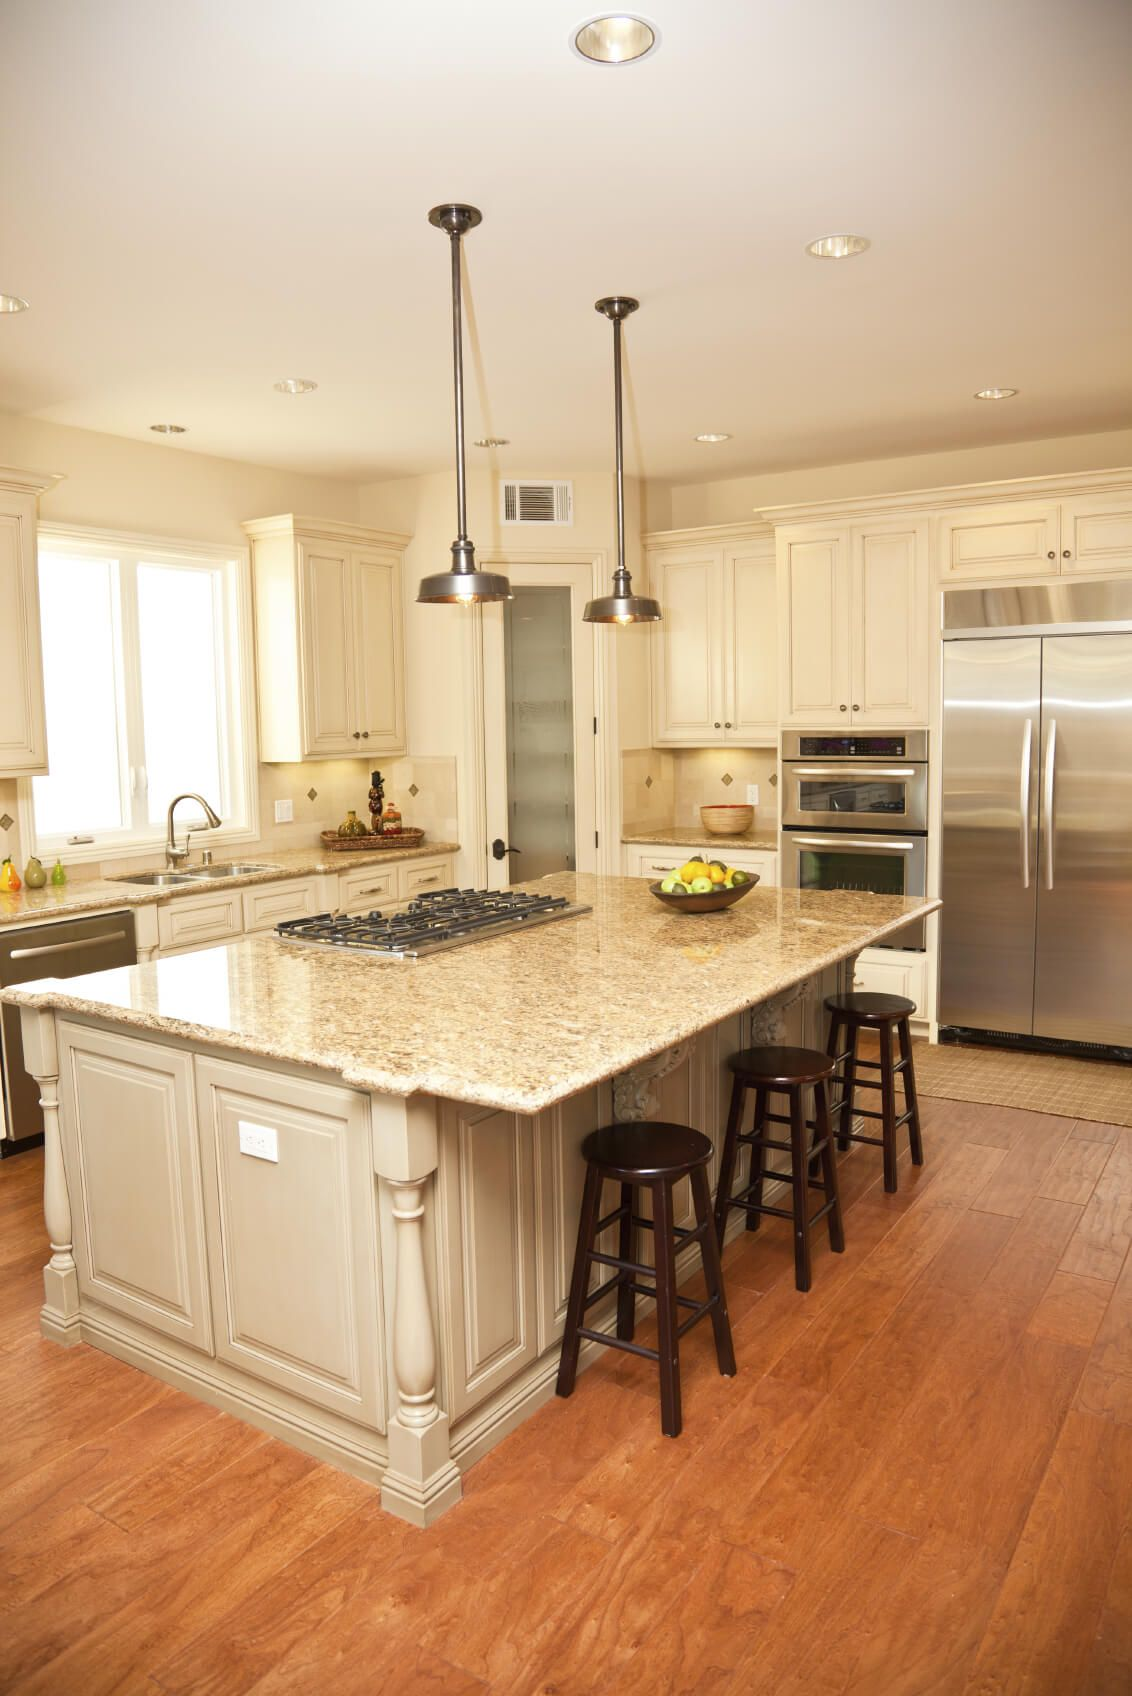 425 White Kitchen Ideas for 2018 Granite countertops